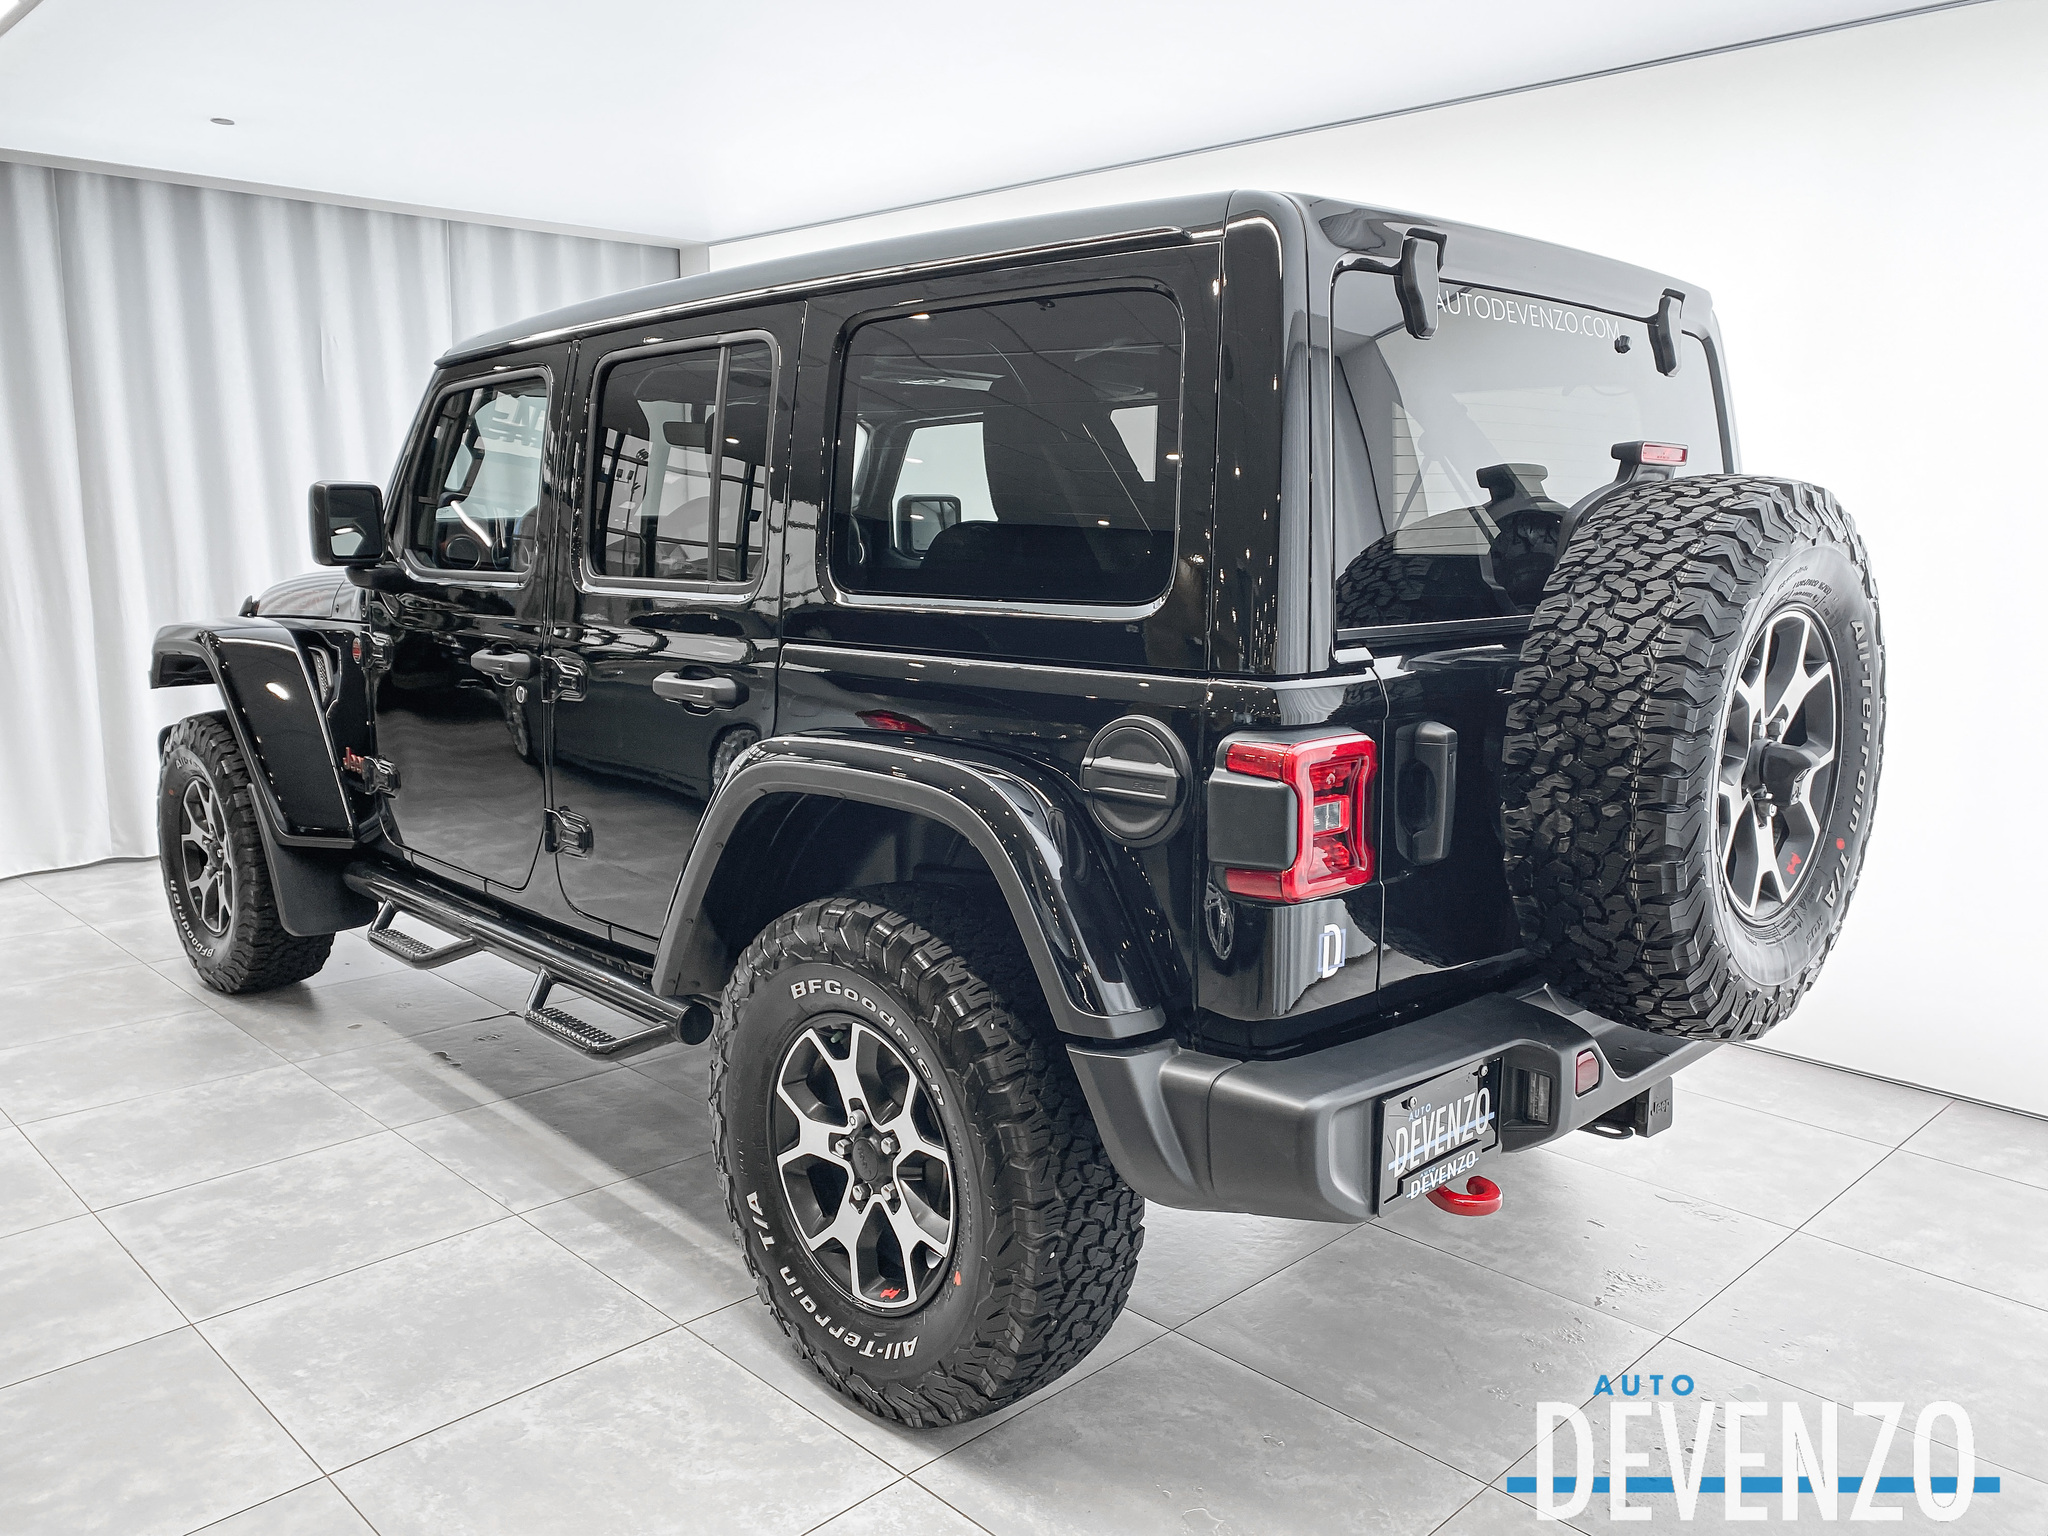 2021 Jeep Wrangler Unlimited Rubicon 4×4 CUIR/NAVI/TOIT SKY TOUCH complet